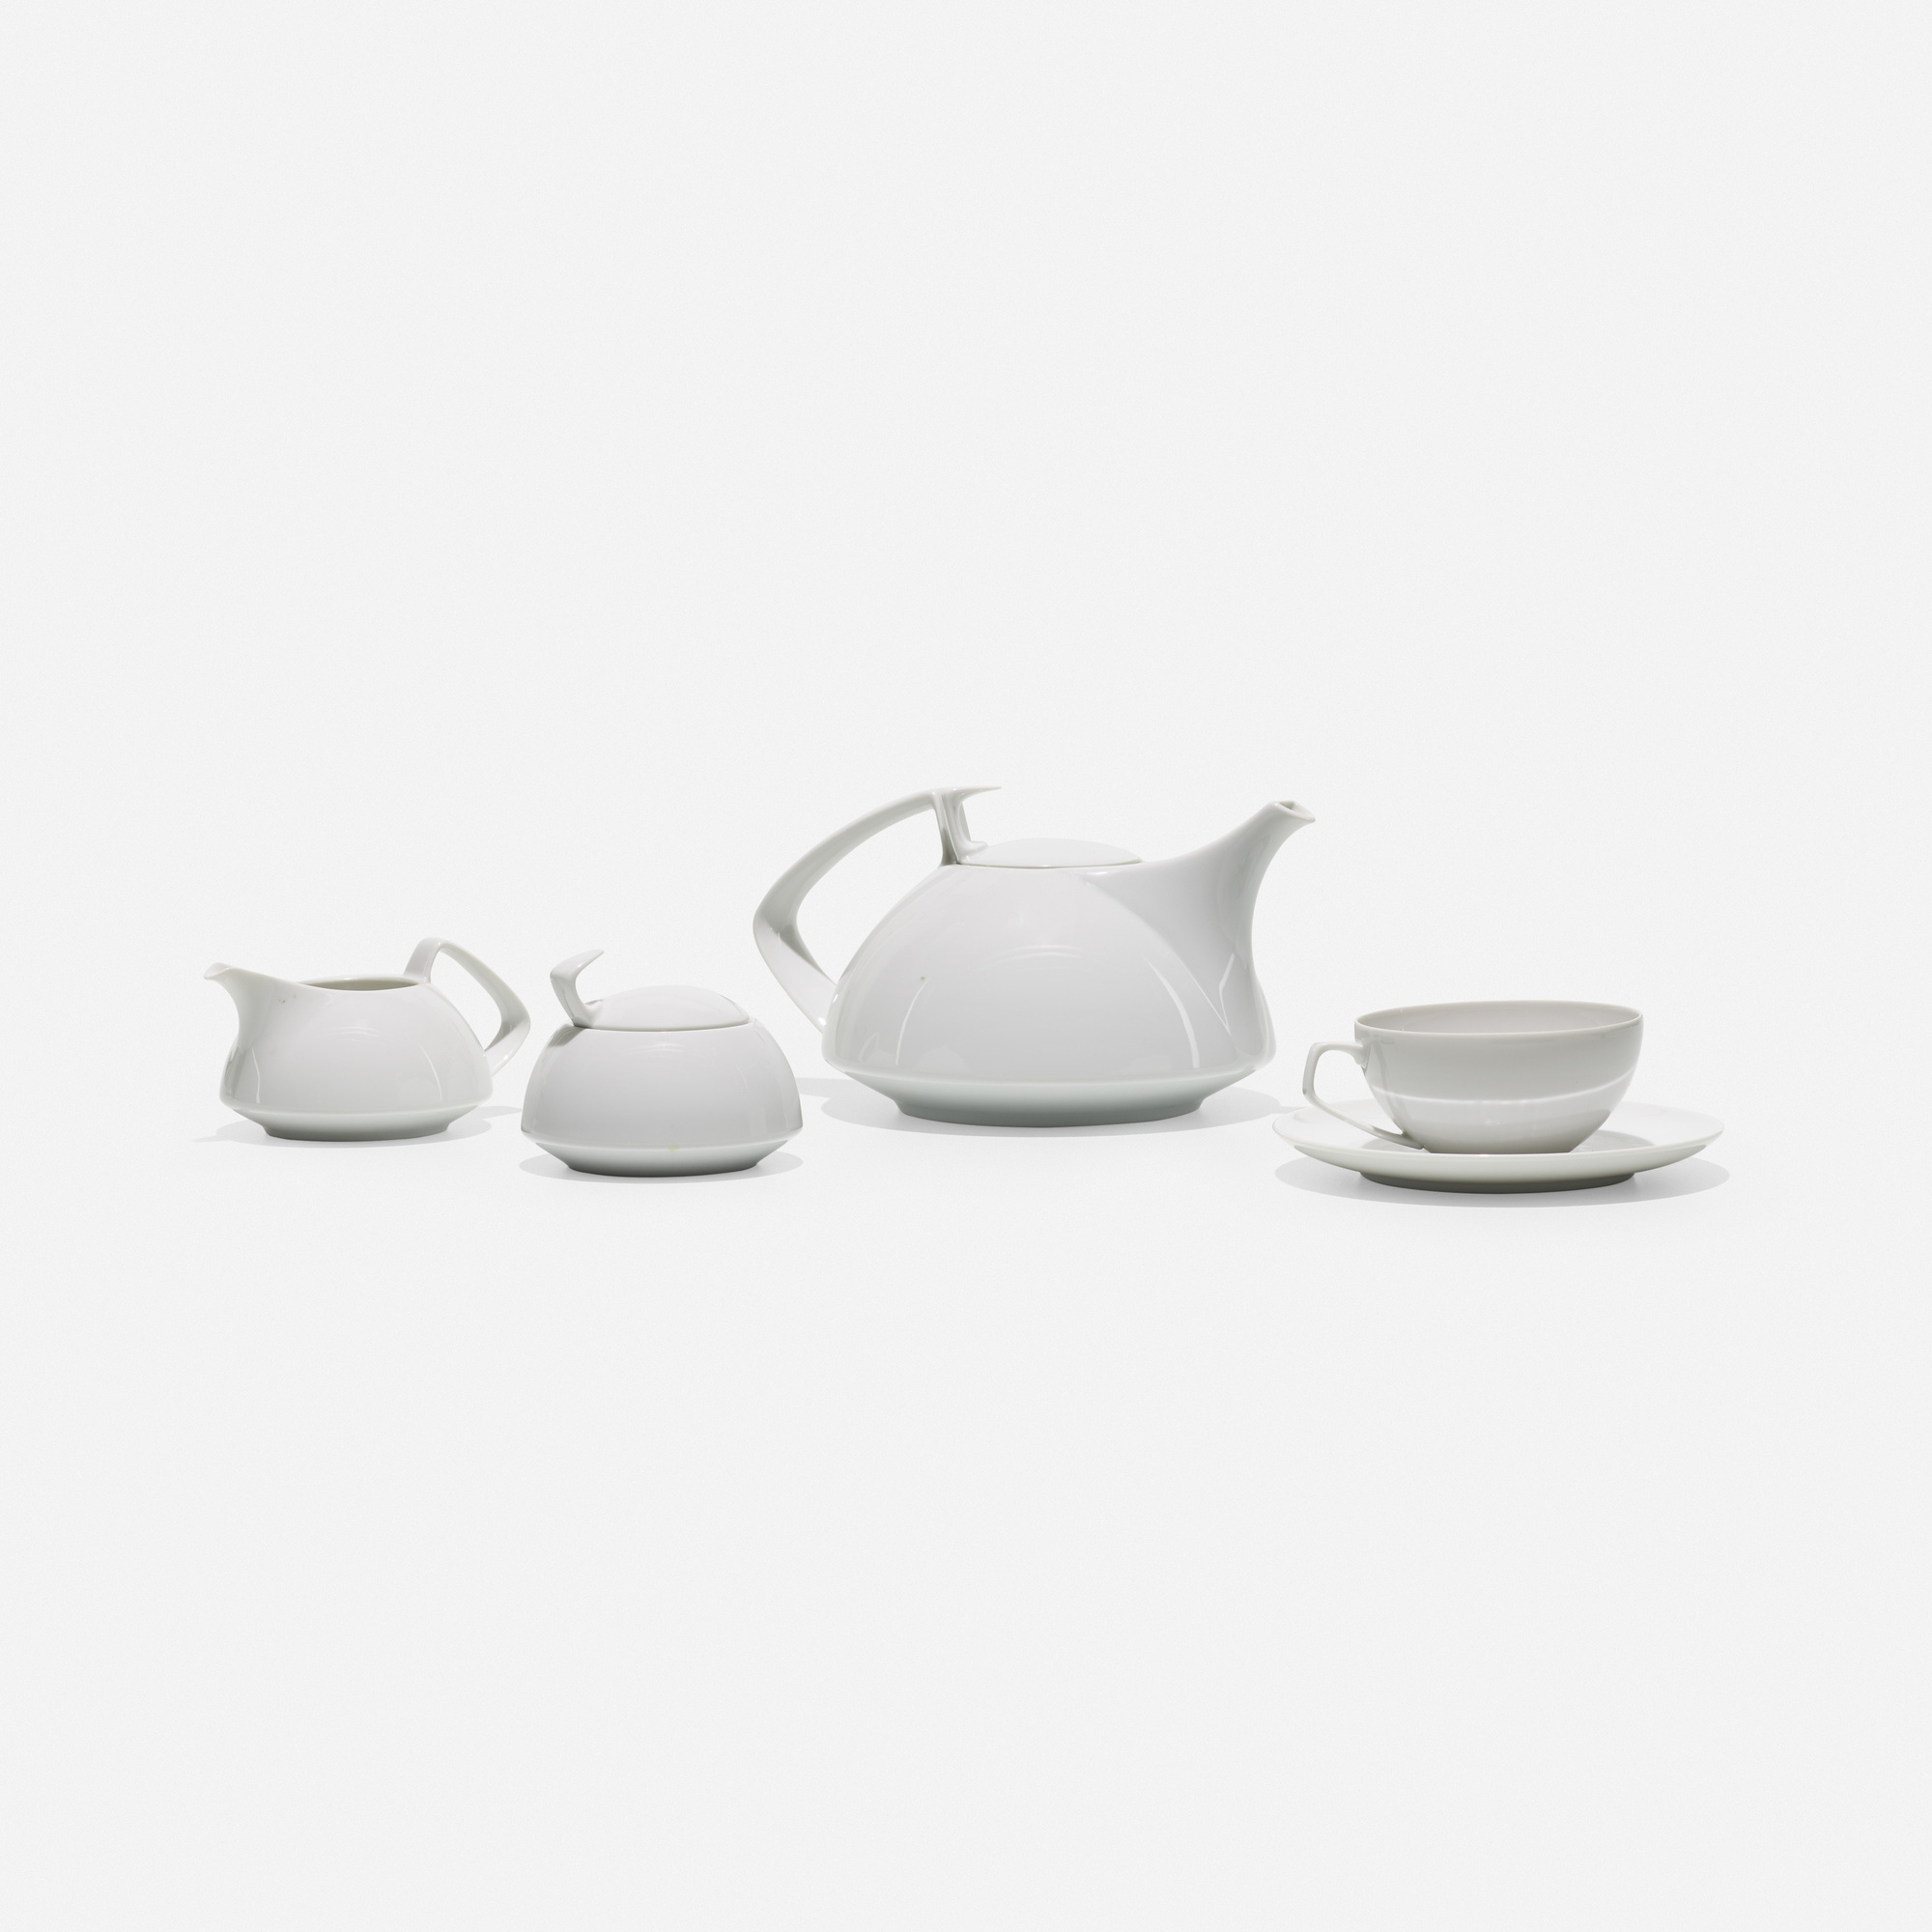 142: Walter Gropius / TAC tea service (1 of 1)